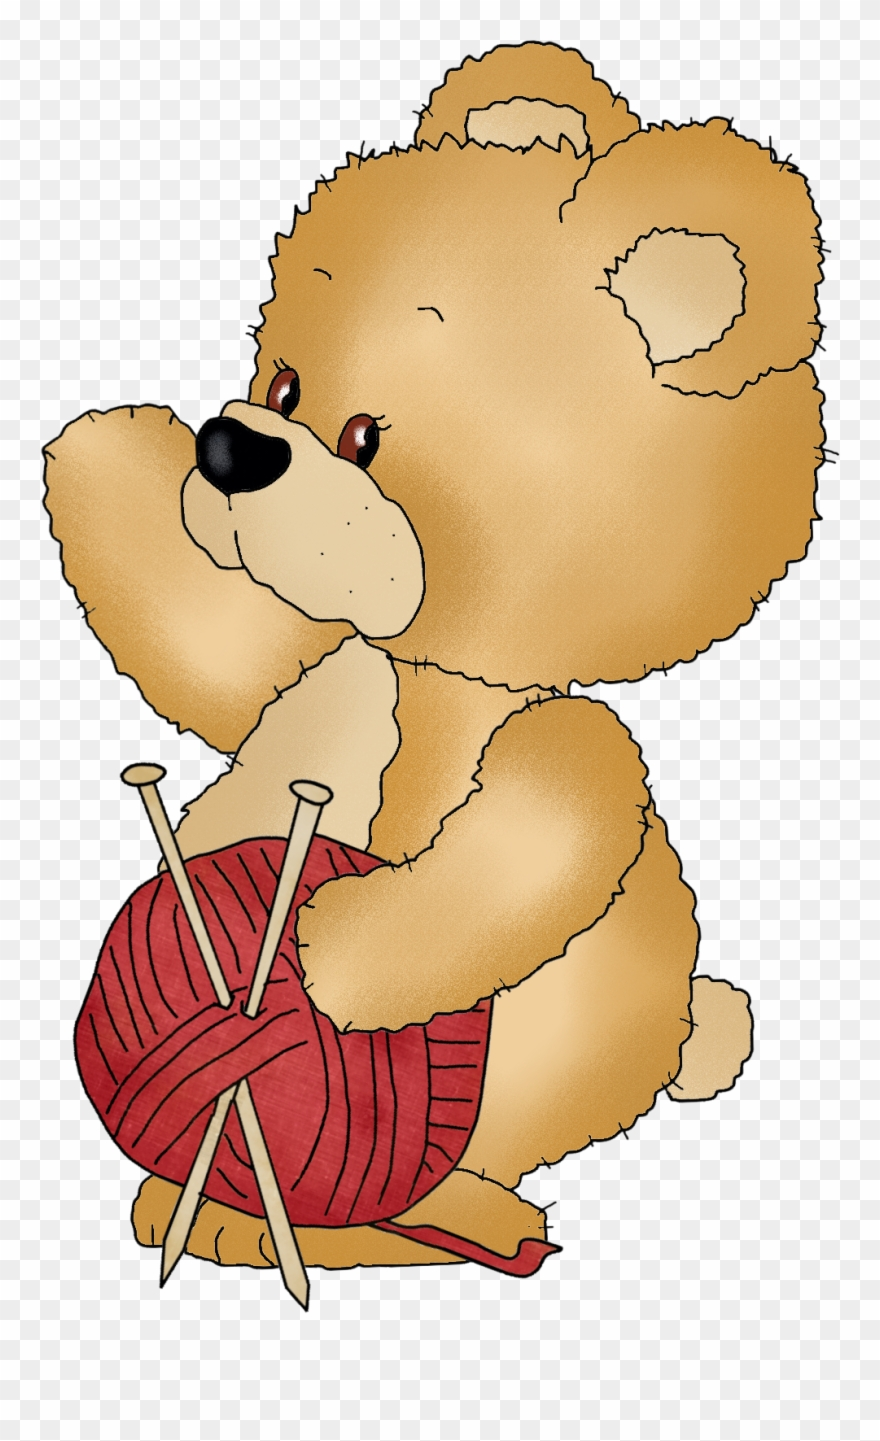 hight resolution of bear with me is a downloadable machine embroidery design clipart